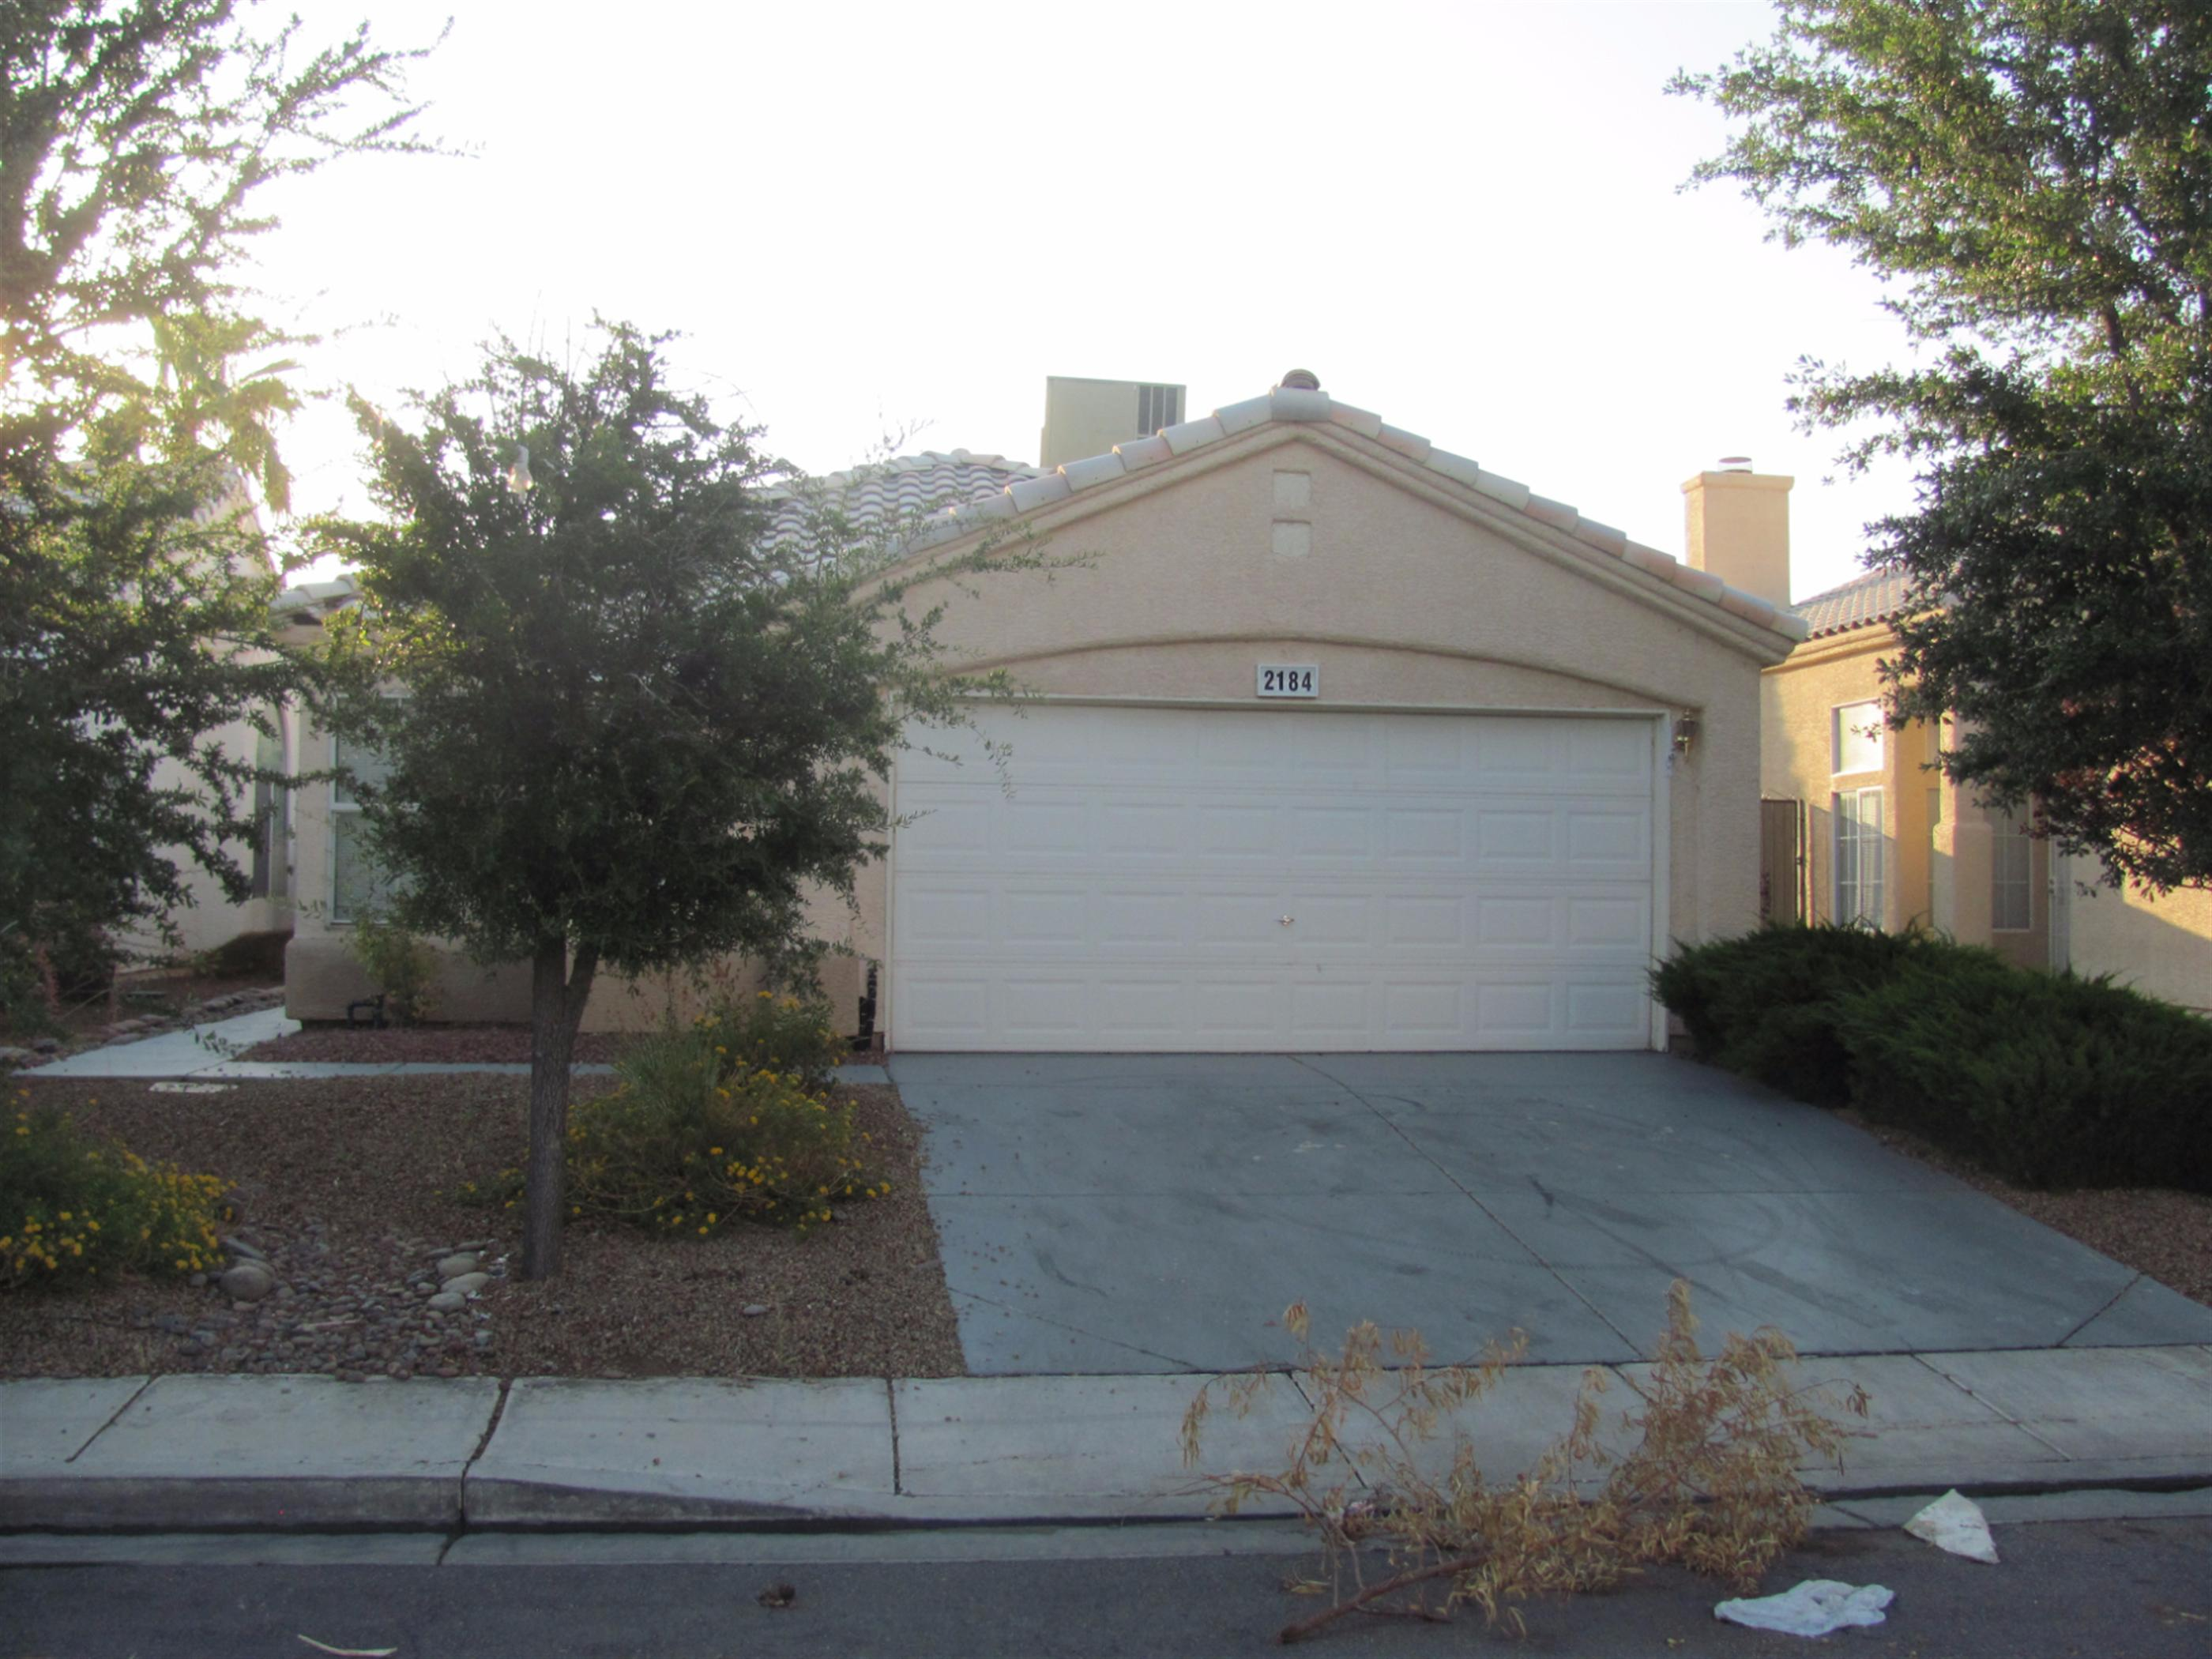 89142 foreclosures – 2184 Raspberry Hill Rd, Las Vegas, NV 89142